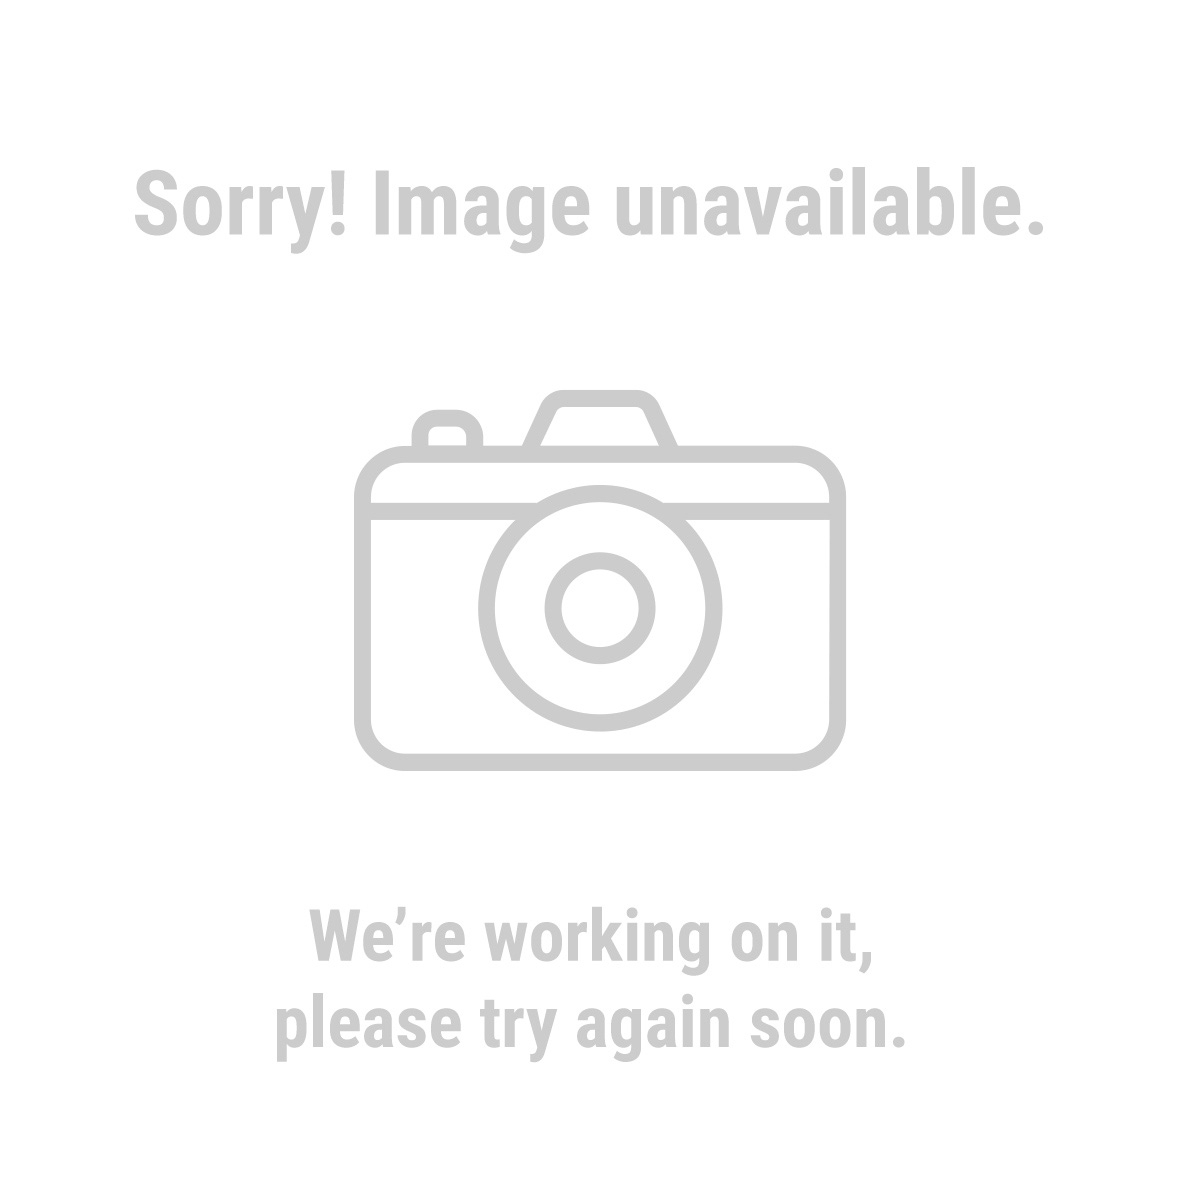 "Pittsburgh 67930 16 Piece 1/4"" Drive E-Socket and Star Bit Set"